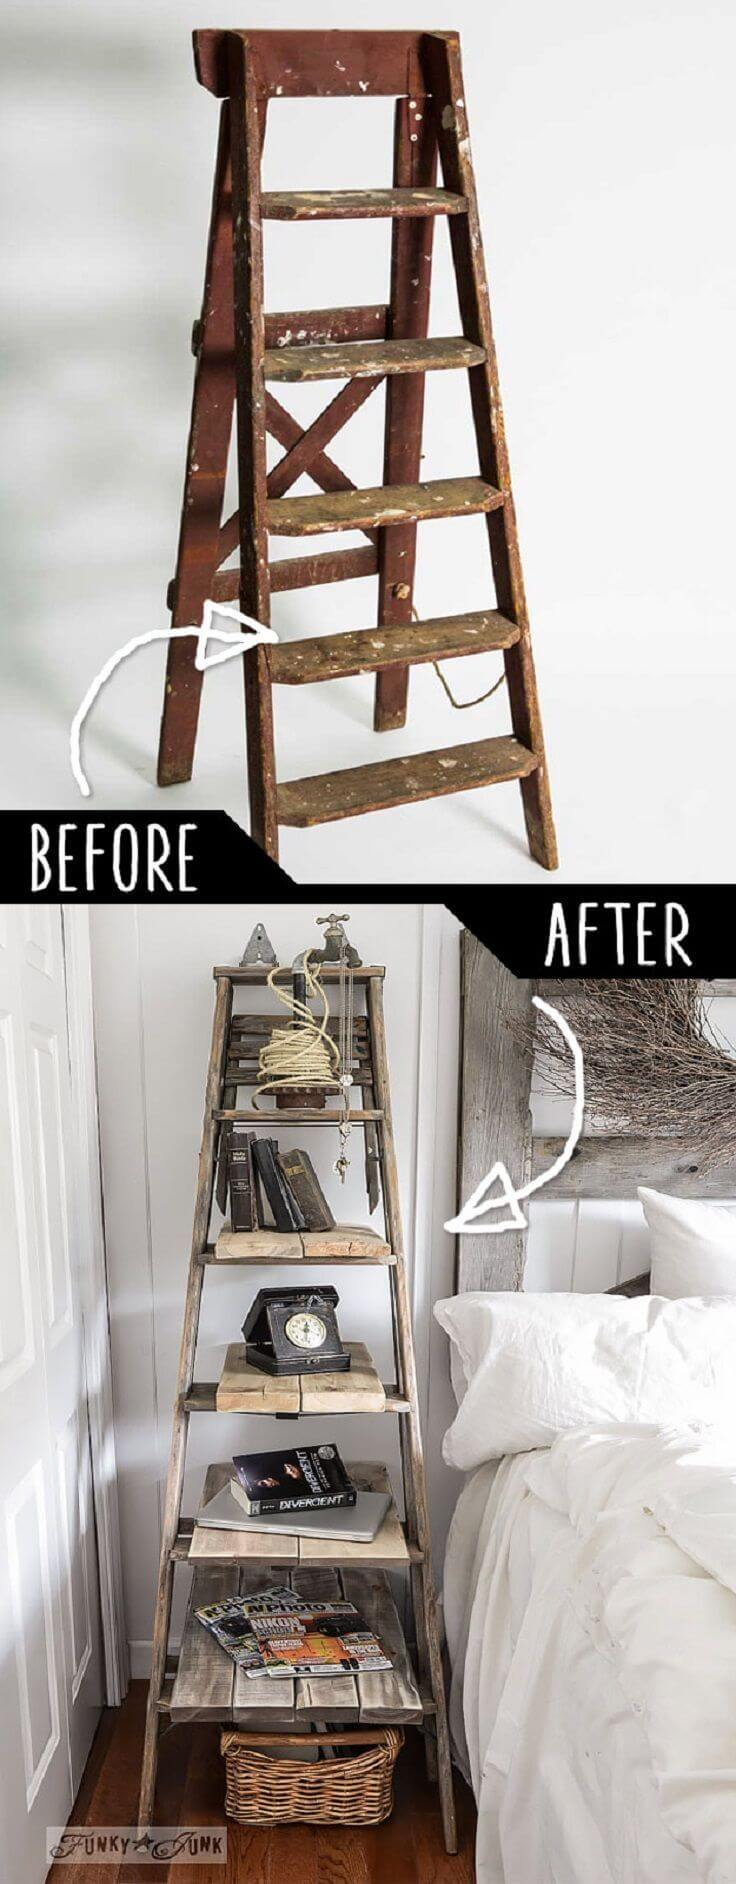 Upcycled Ladder Decoration and Organizer